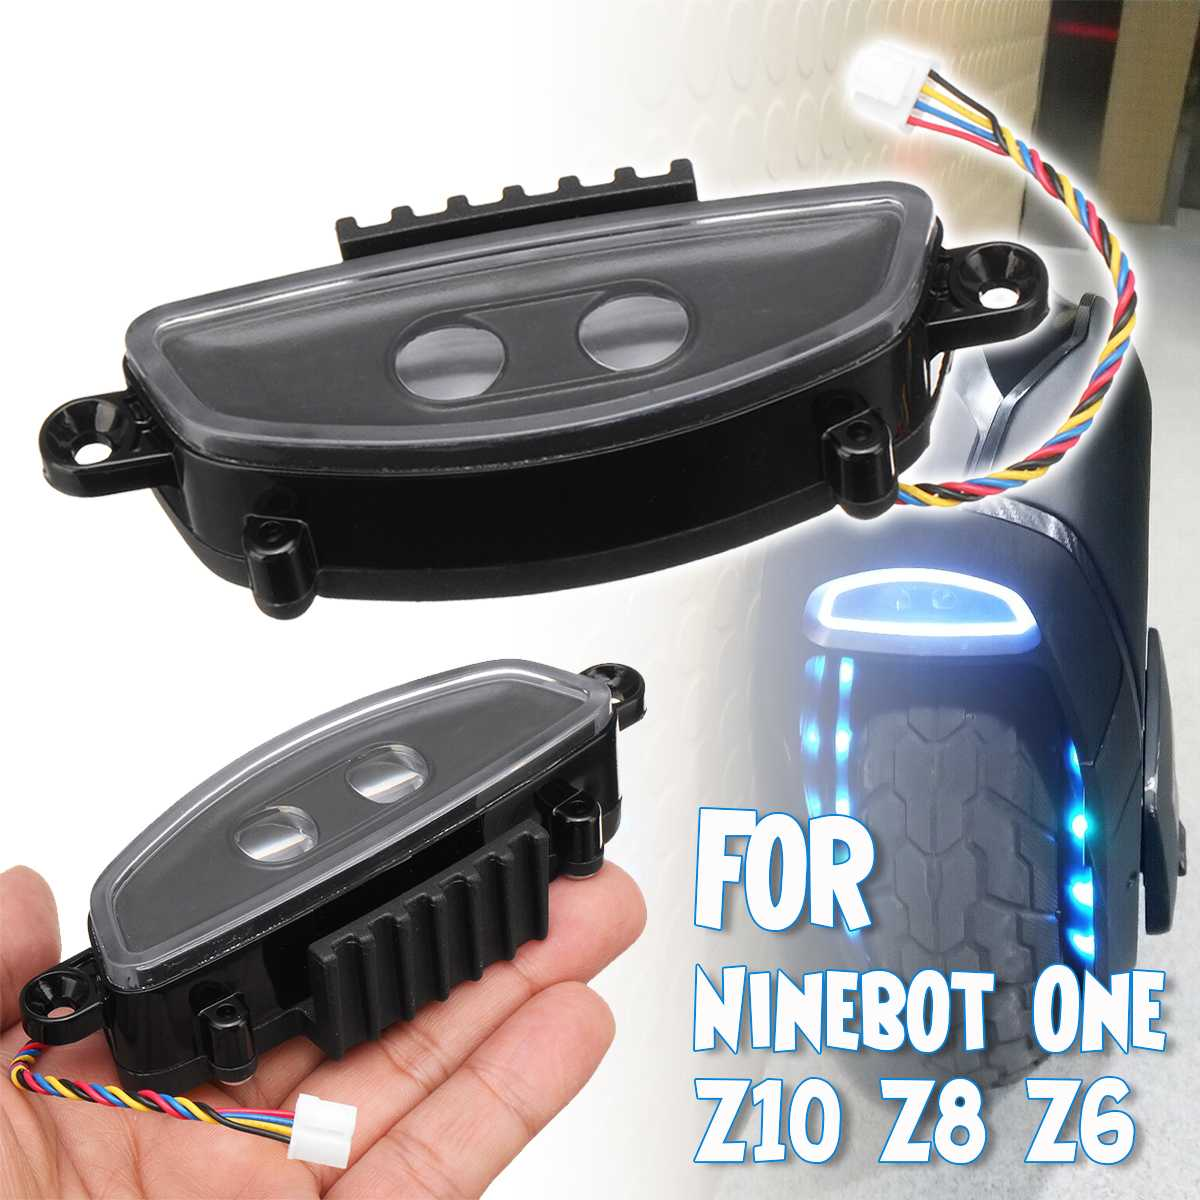 electric unicycle self balance scooter headlight Replacements for Ninebot Z10 front light for Ninebot One Z10 Z8 Z6 spare parts